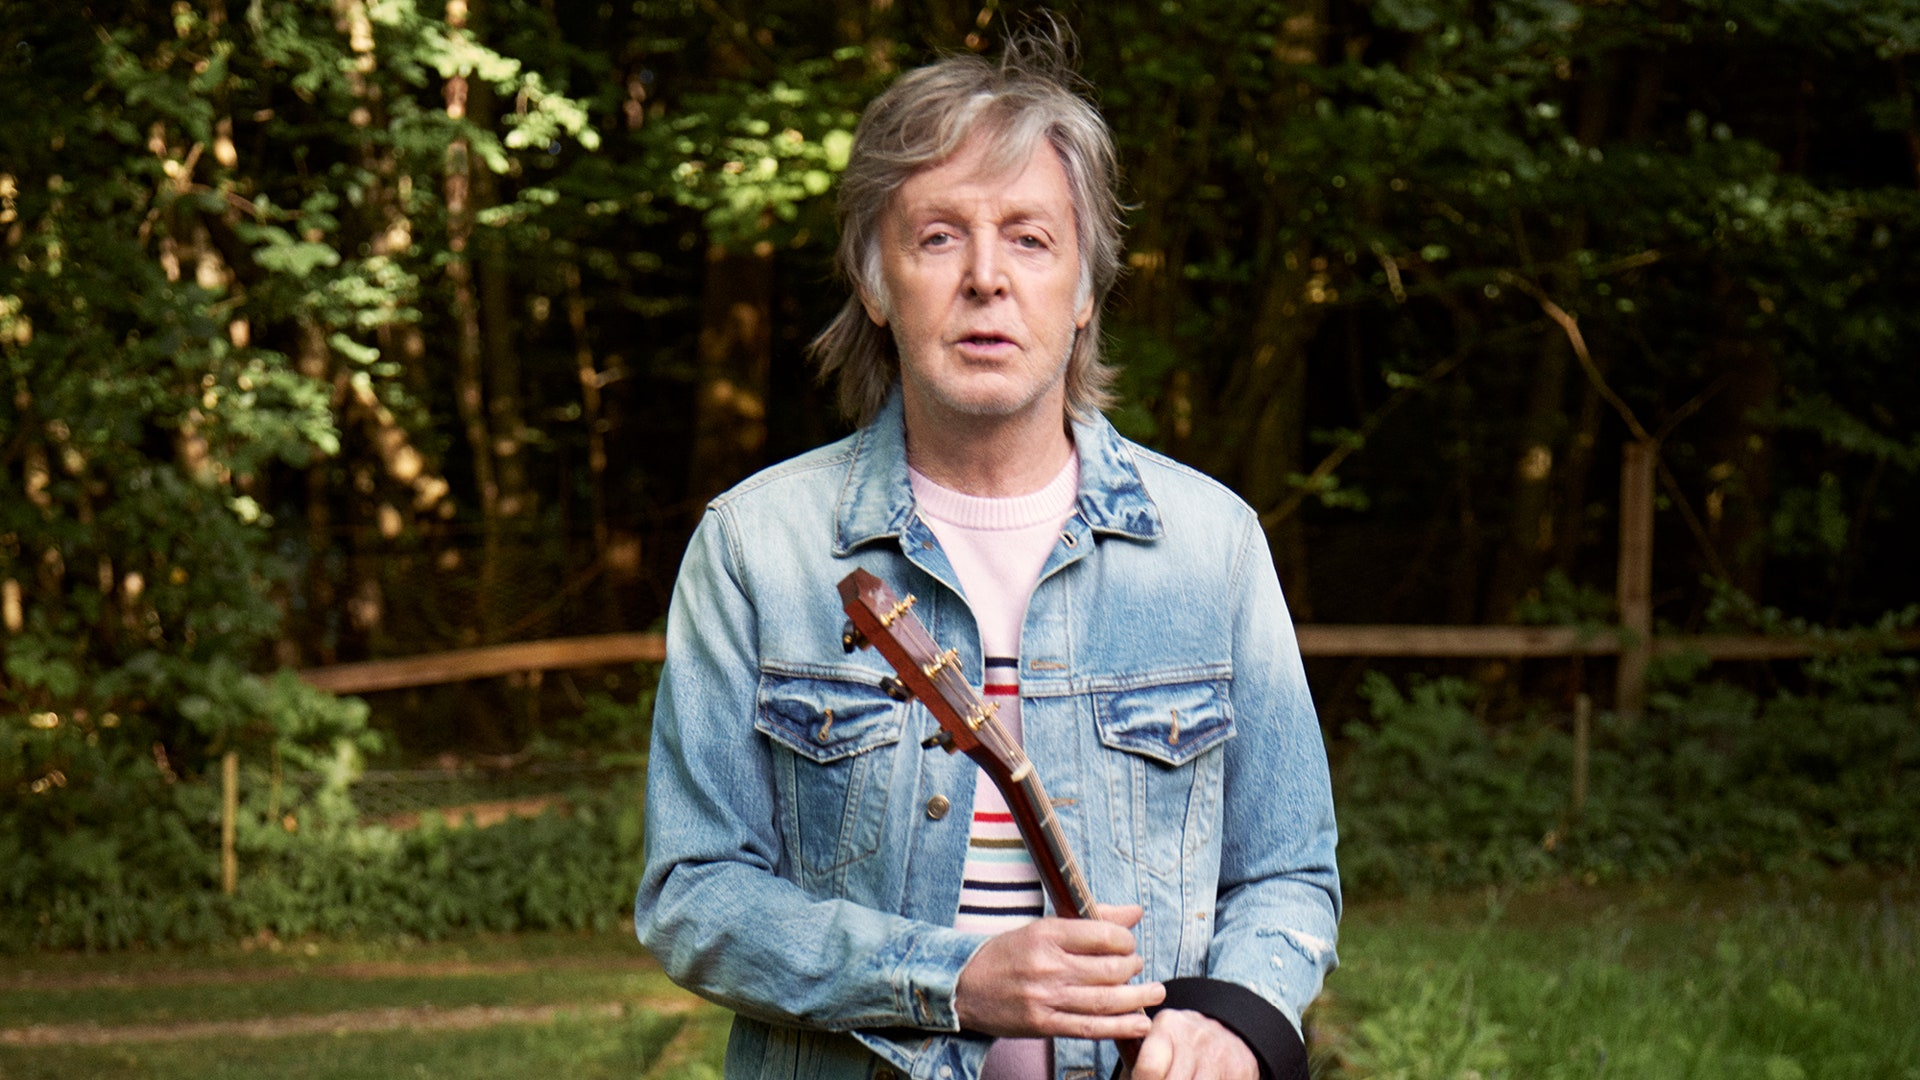 Sir Paul McCartney 'shocked in a pleasant way' by McCartney III Imagined remixes